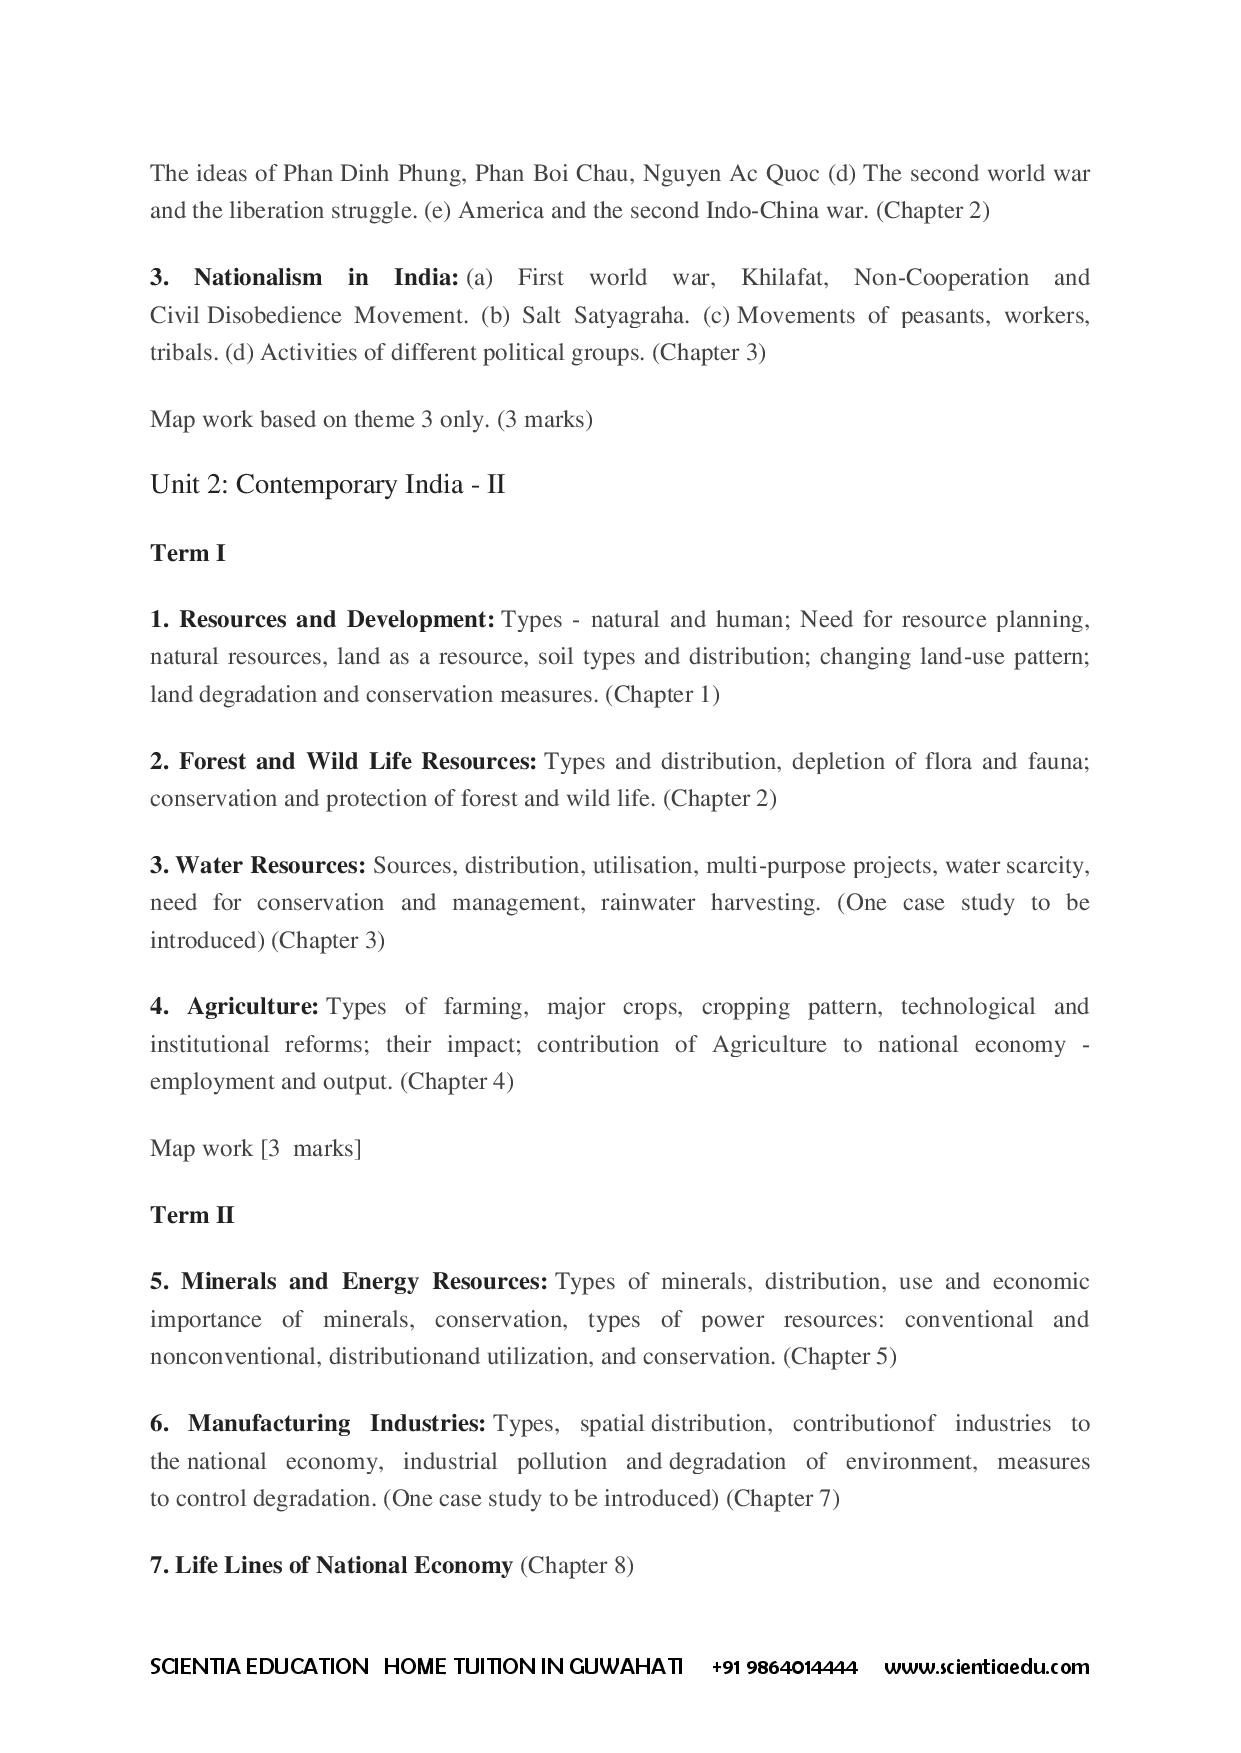 Free Maths Worksheets For Class 2 Cbse Templates and Worksheets – Mental Maths Worksheets for Class 2